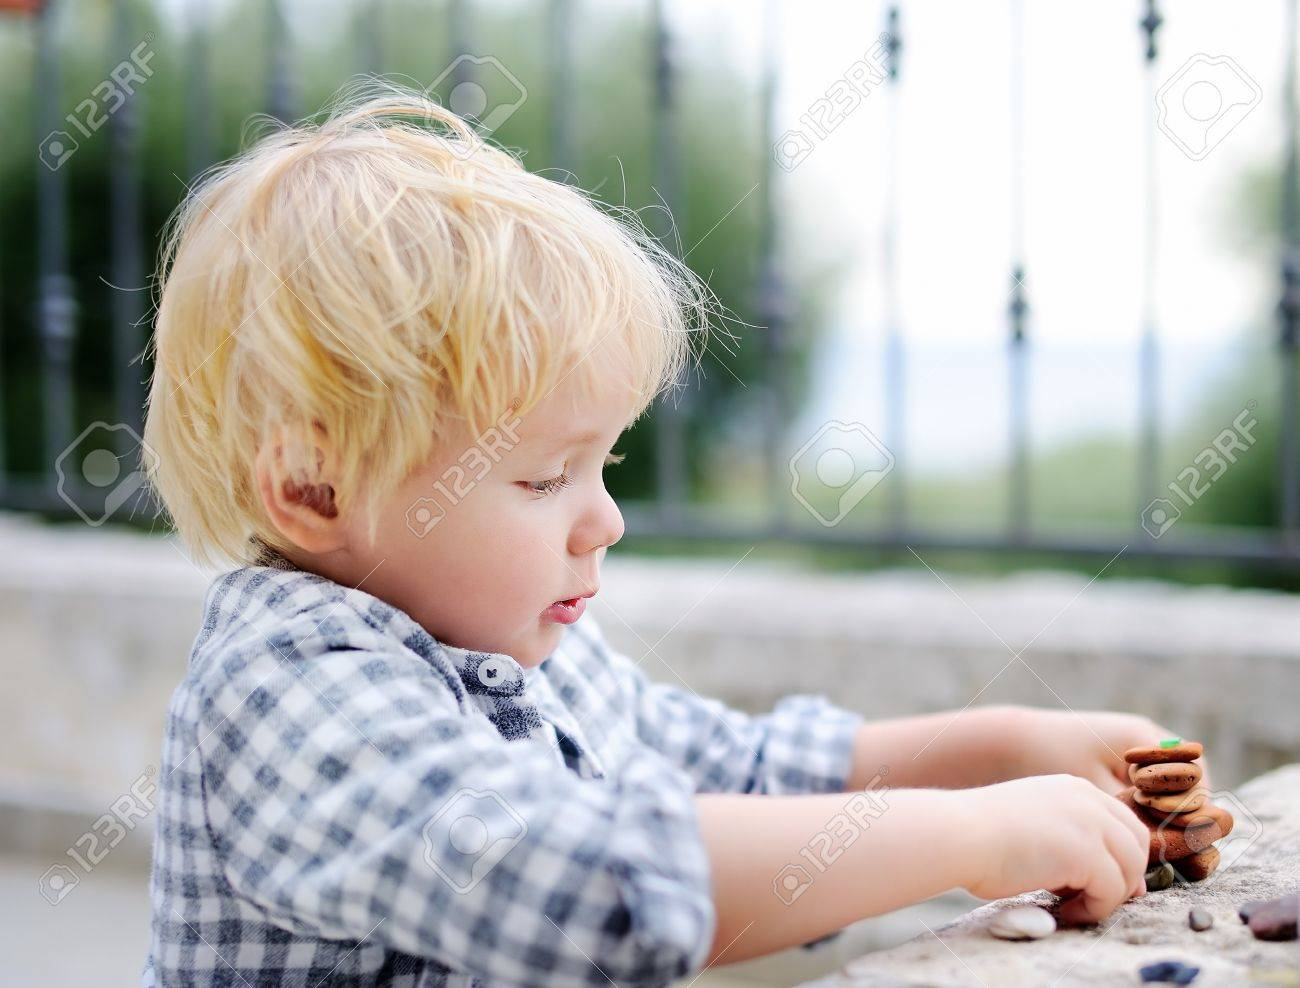 ab8ff54caad9 Cute blonde little boy playing with little stones outdoors. Toddler child  builds tower Stock Photo